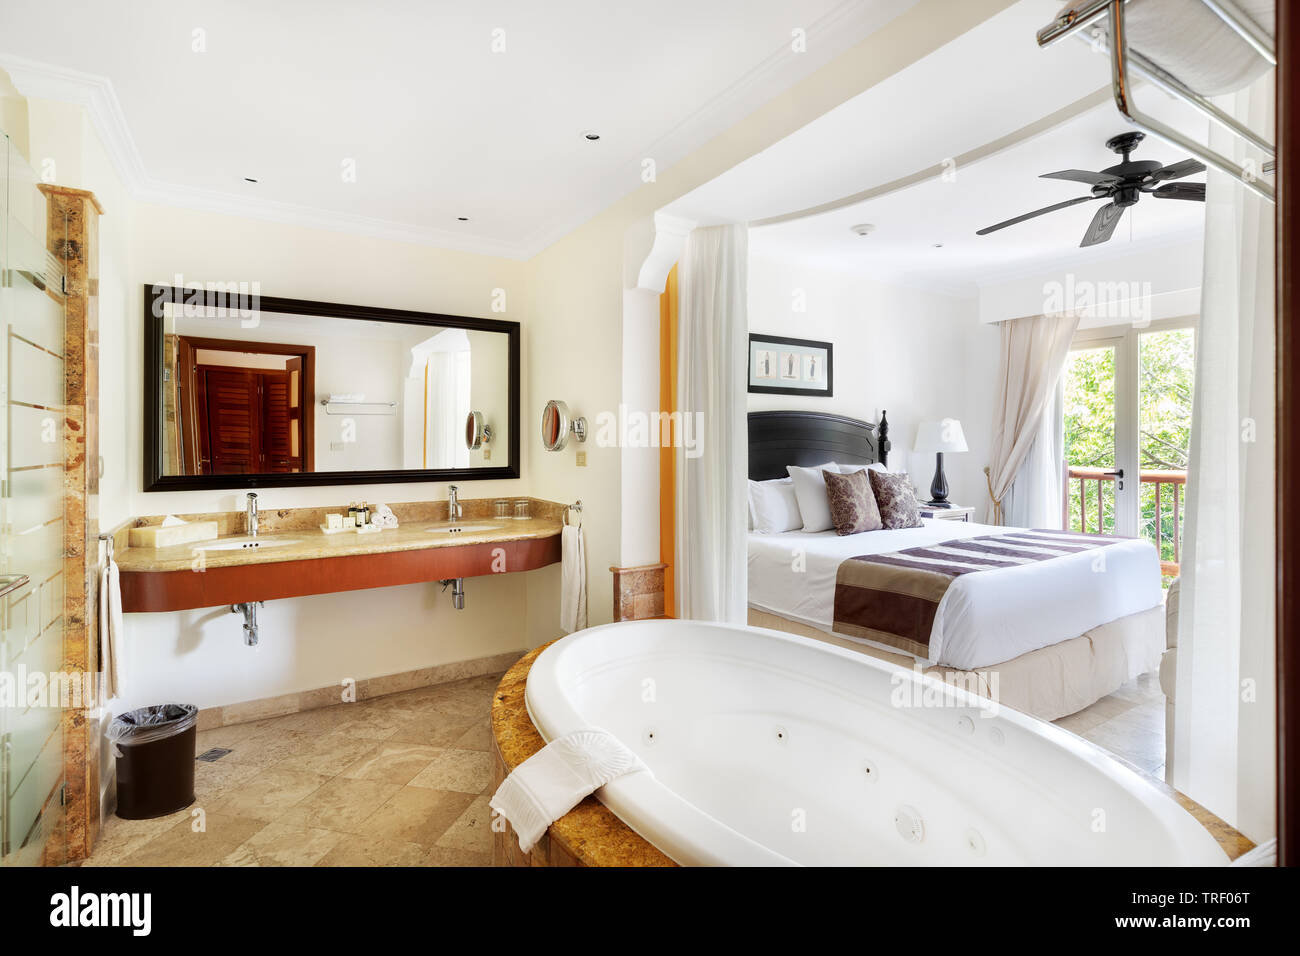 A hotel room at the all-inclusive, adult only resort, Valentin Imperial Maya. The room features a Jacuzzi tub, balcony and plenty of space. - Stock Image